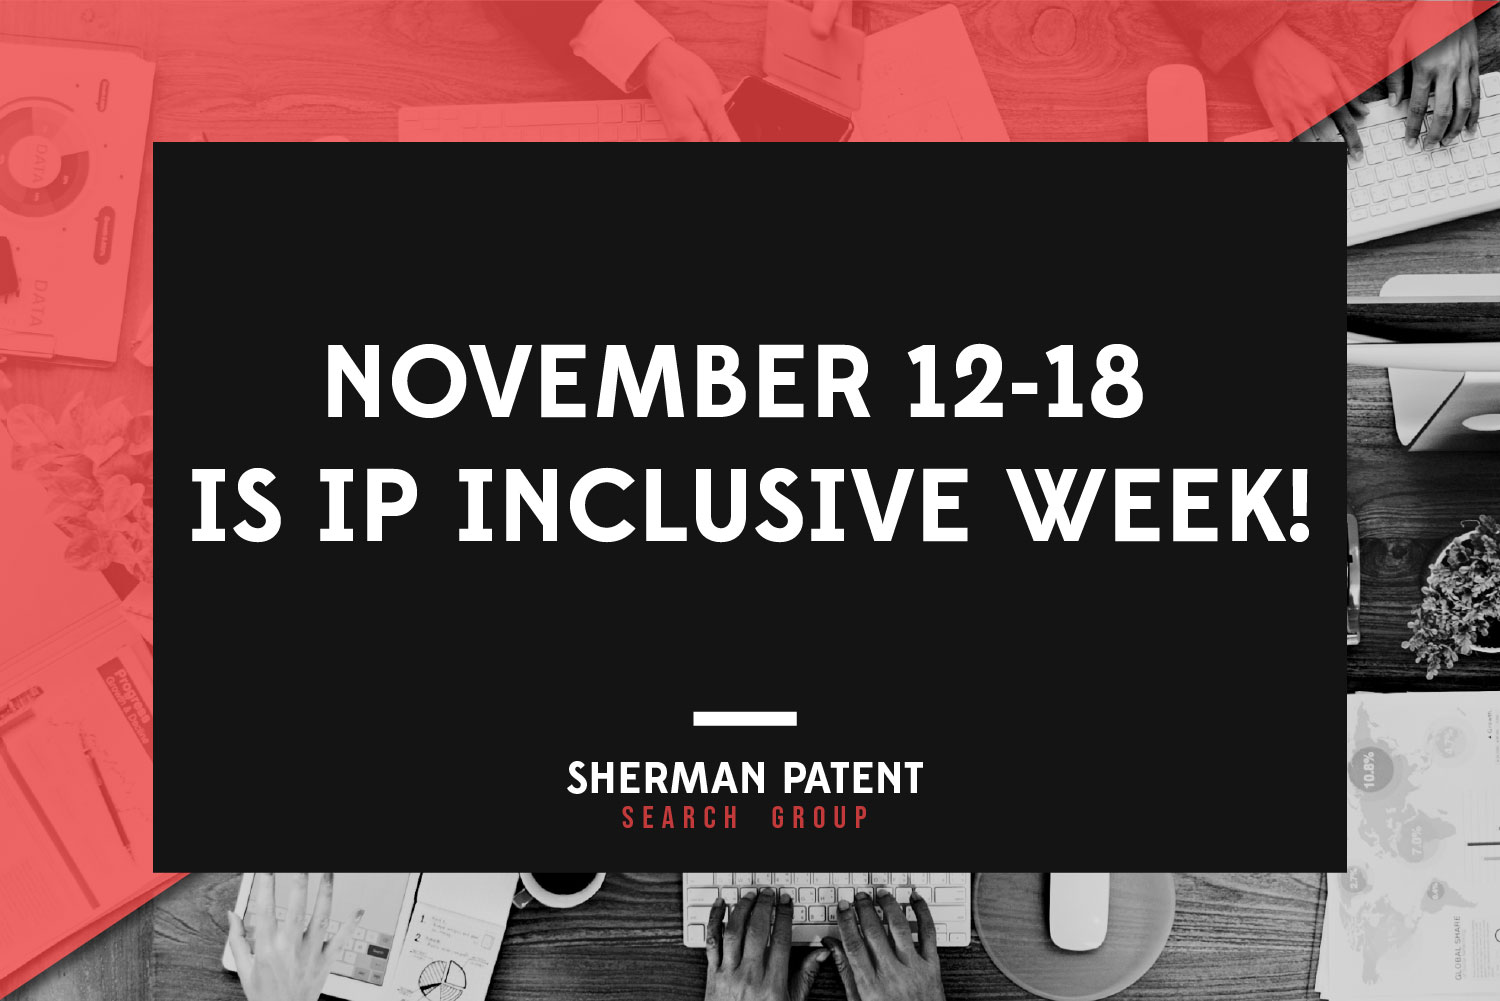 spsg-blog_nov-is-ip-inclusive-week_cover.jpg